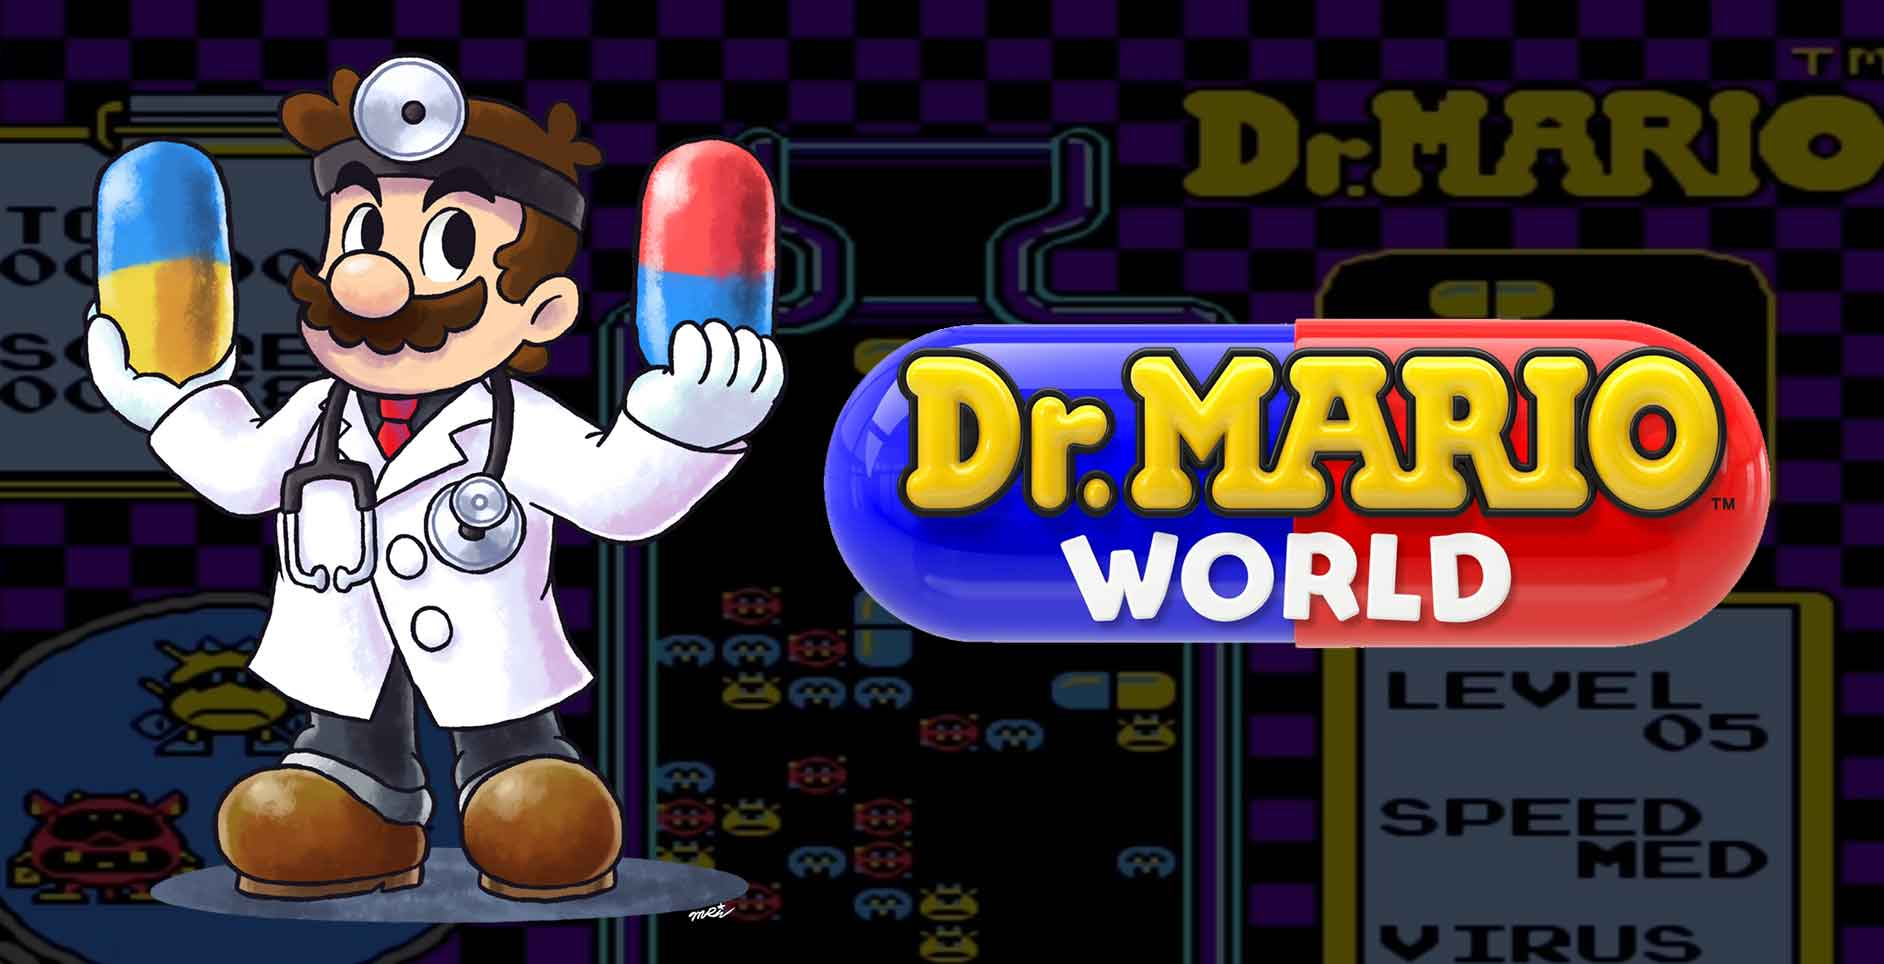 Dr. Mario World is coming to iOS and Android this summer